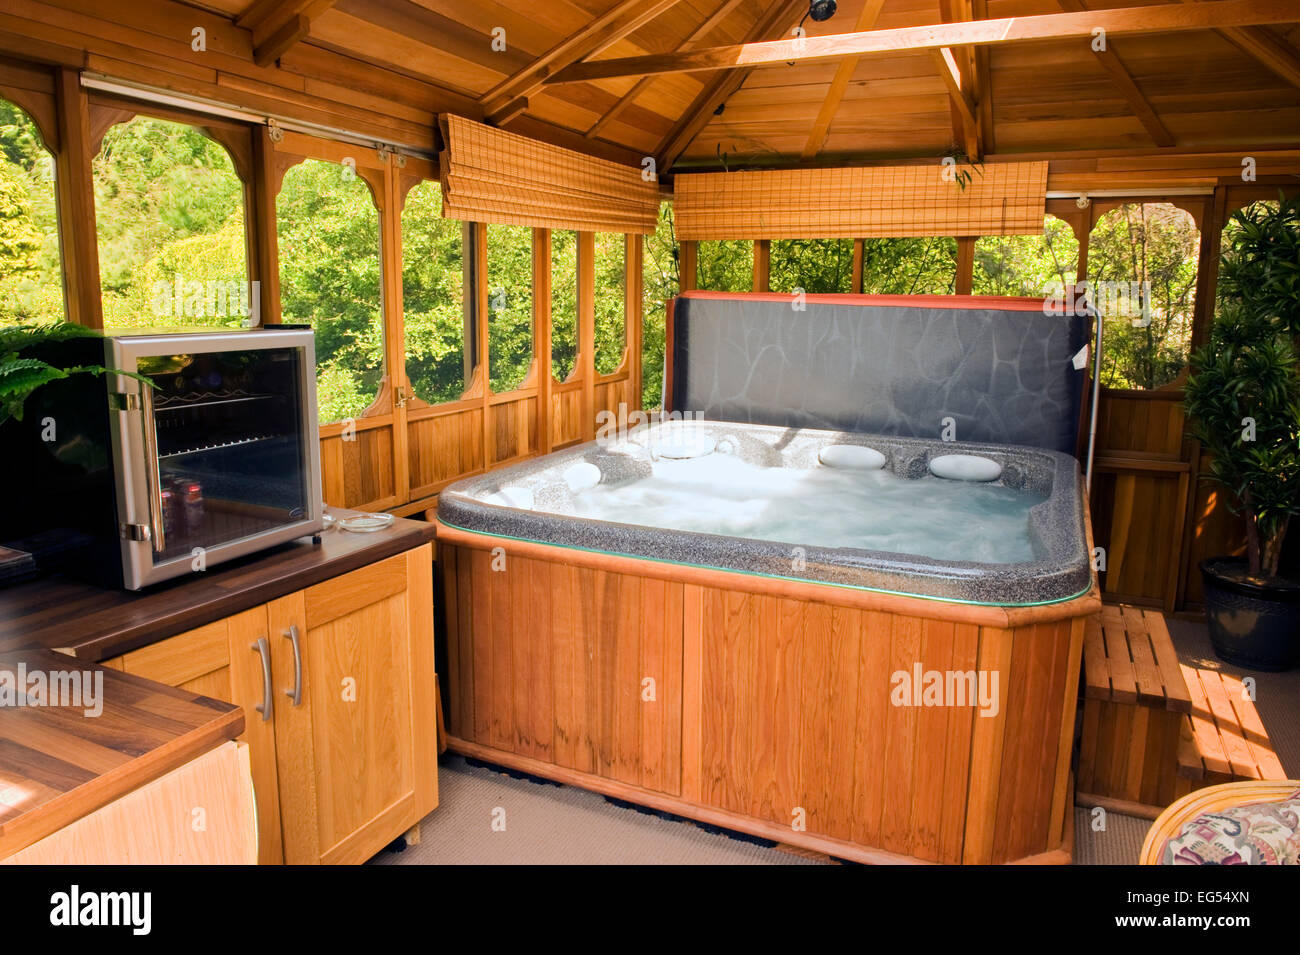 hot tub / jacuzzi inside a cedar gazebo release available for ...